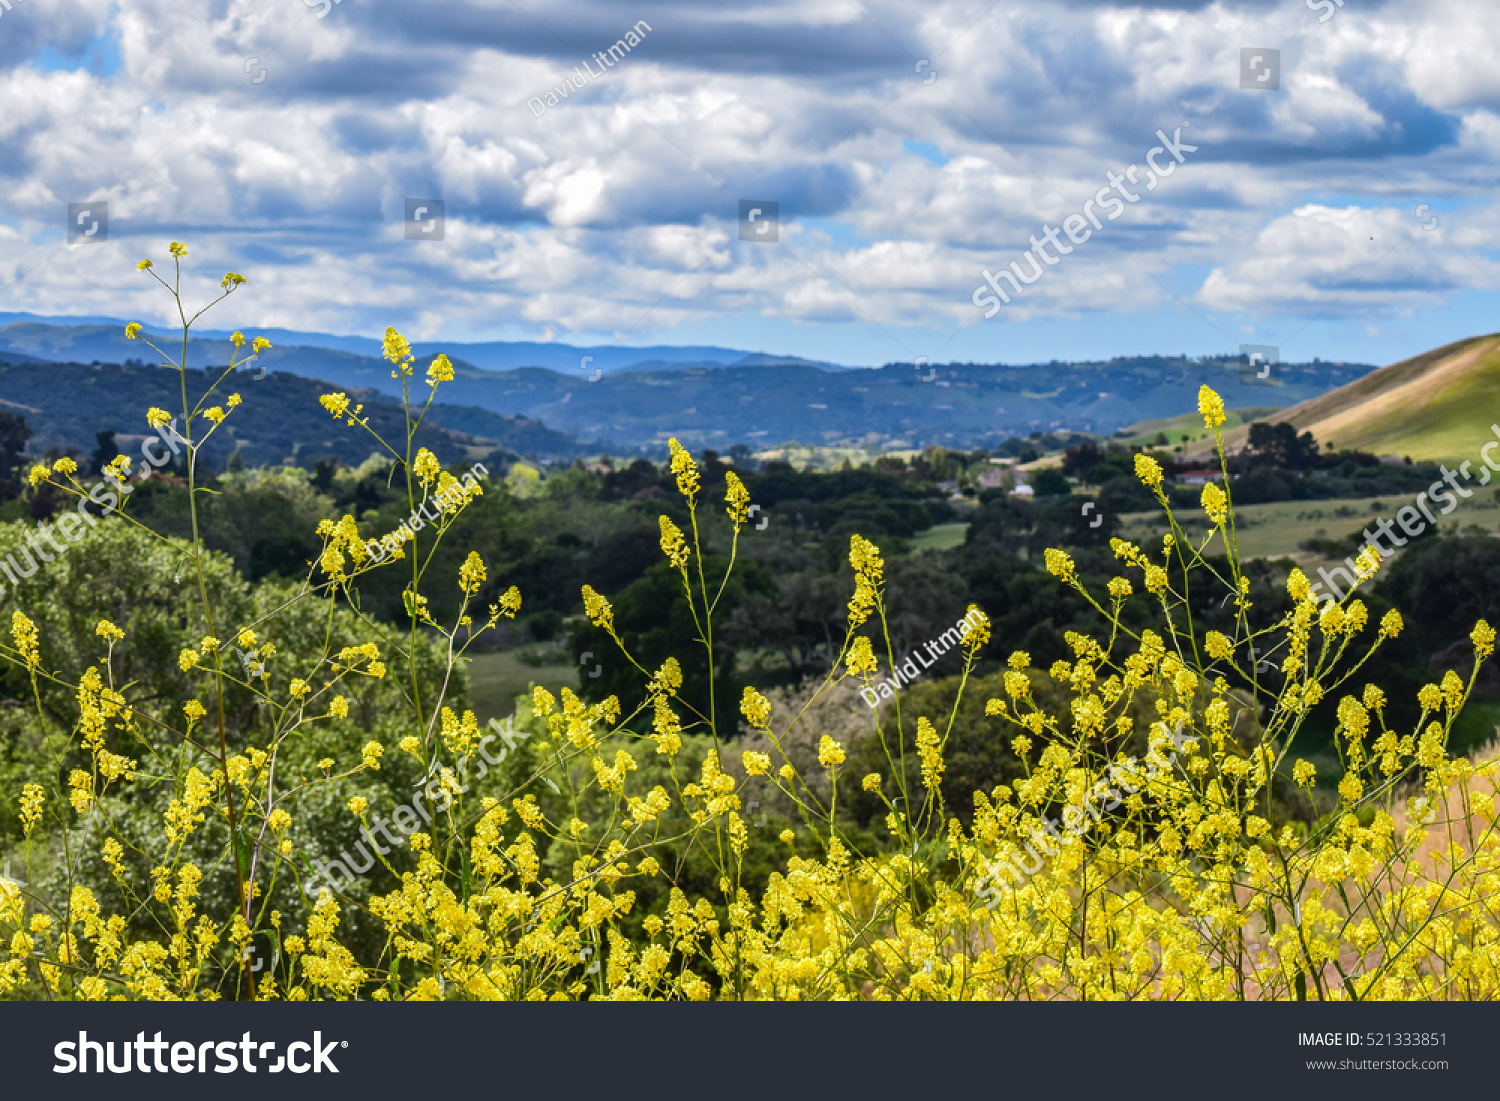 Yellow wildflowers grow tall in the foreground, along a hiking trail of Fort Ord National Monument, with a view of rolling hills and clouds in the Salinas area of Monterey County in central California